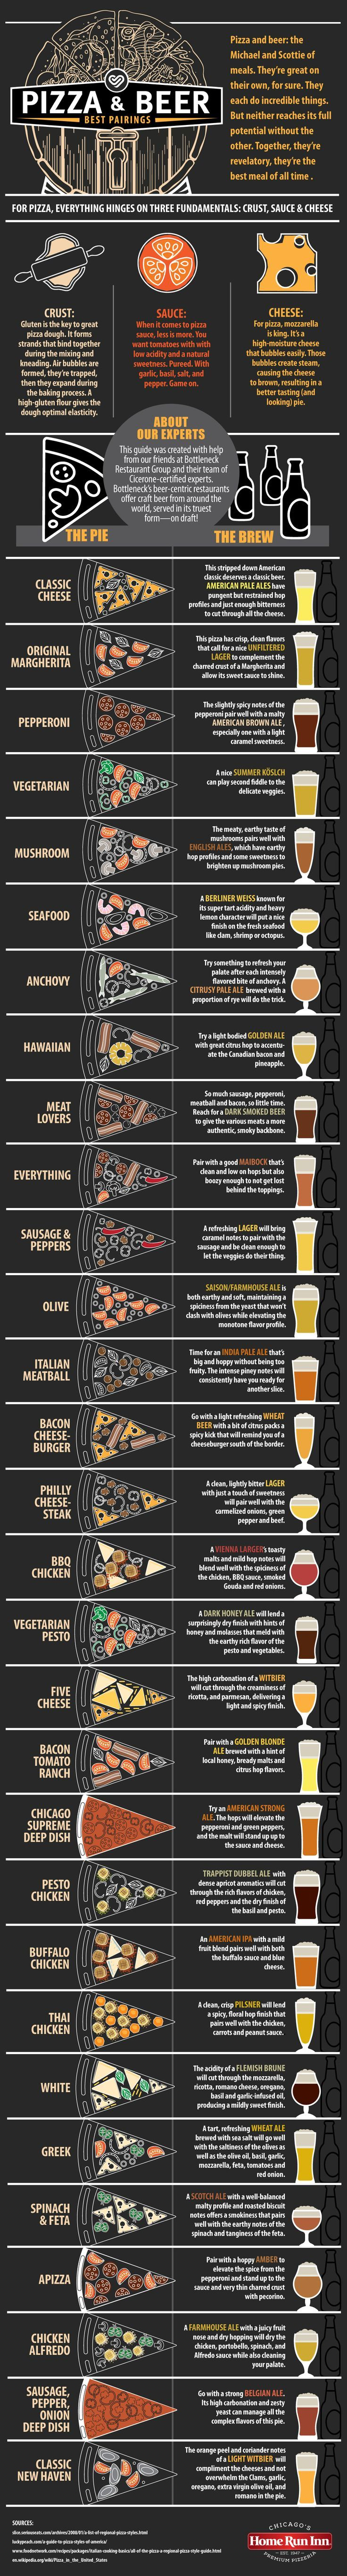 The Ultimate Guide to Food and Beer Pairings #Infographic